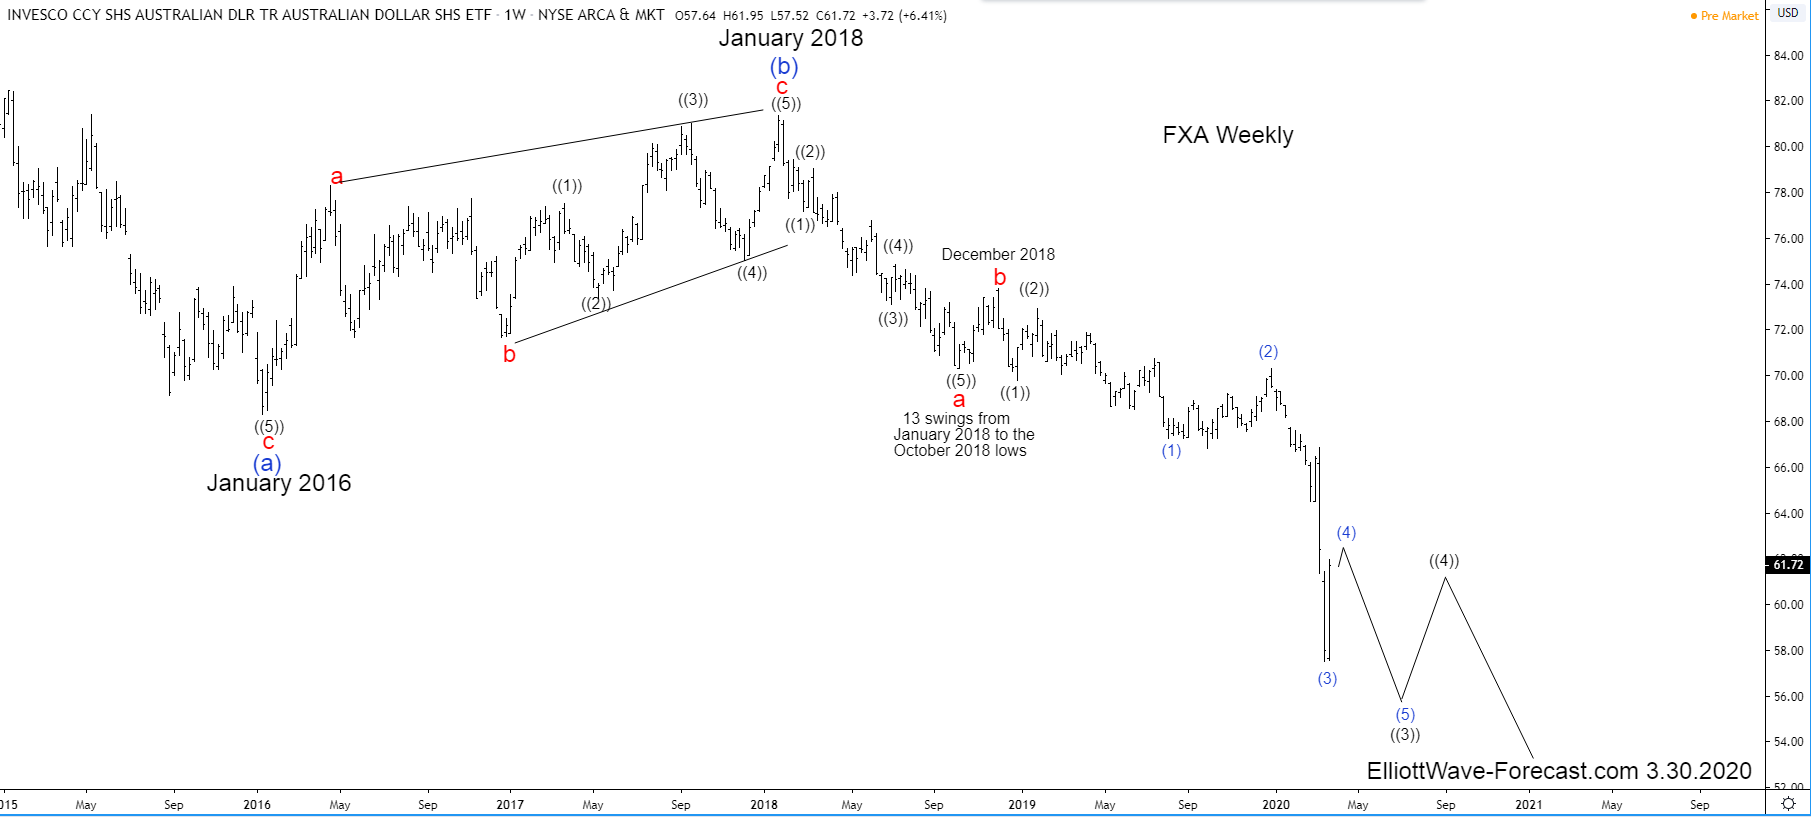 $FXA Bearish Cycles From The July 2011 High